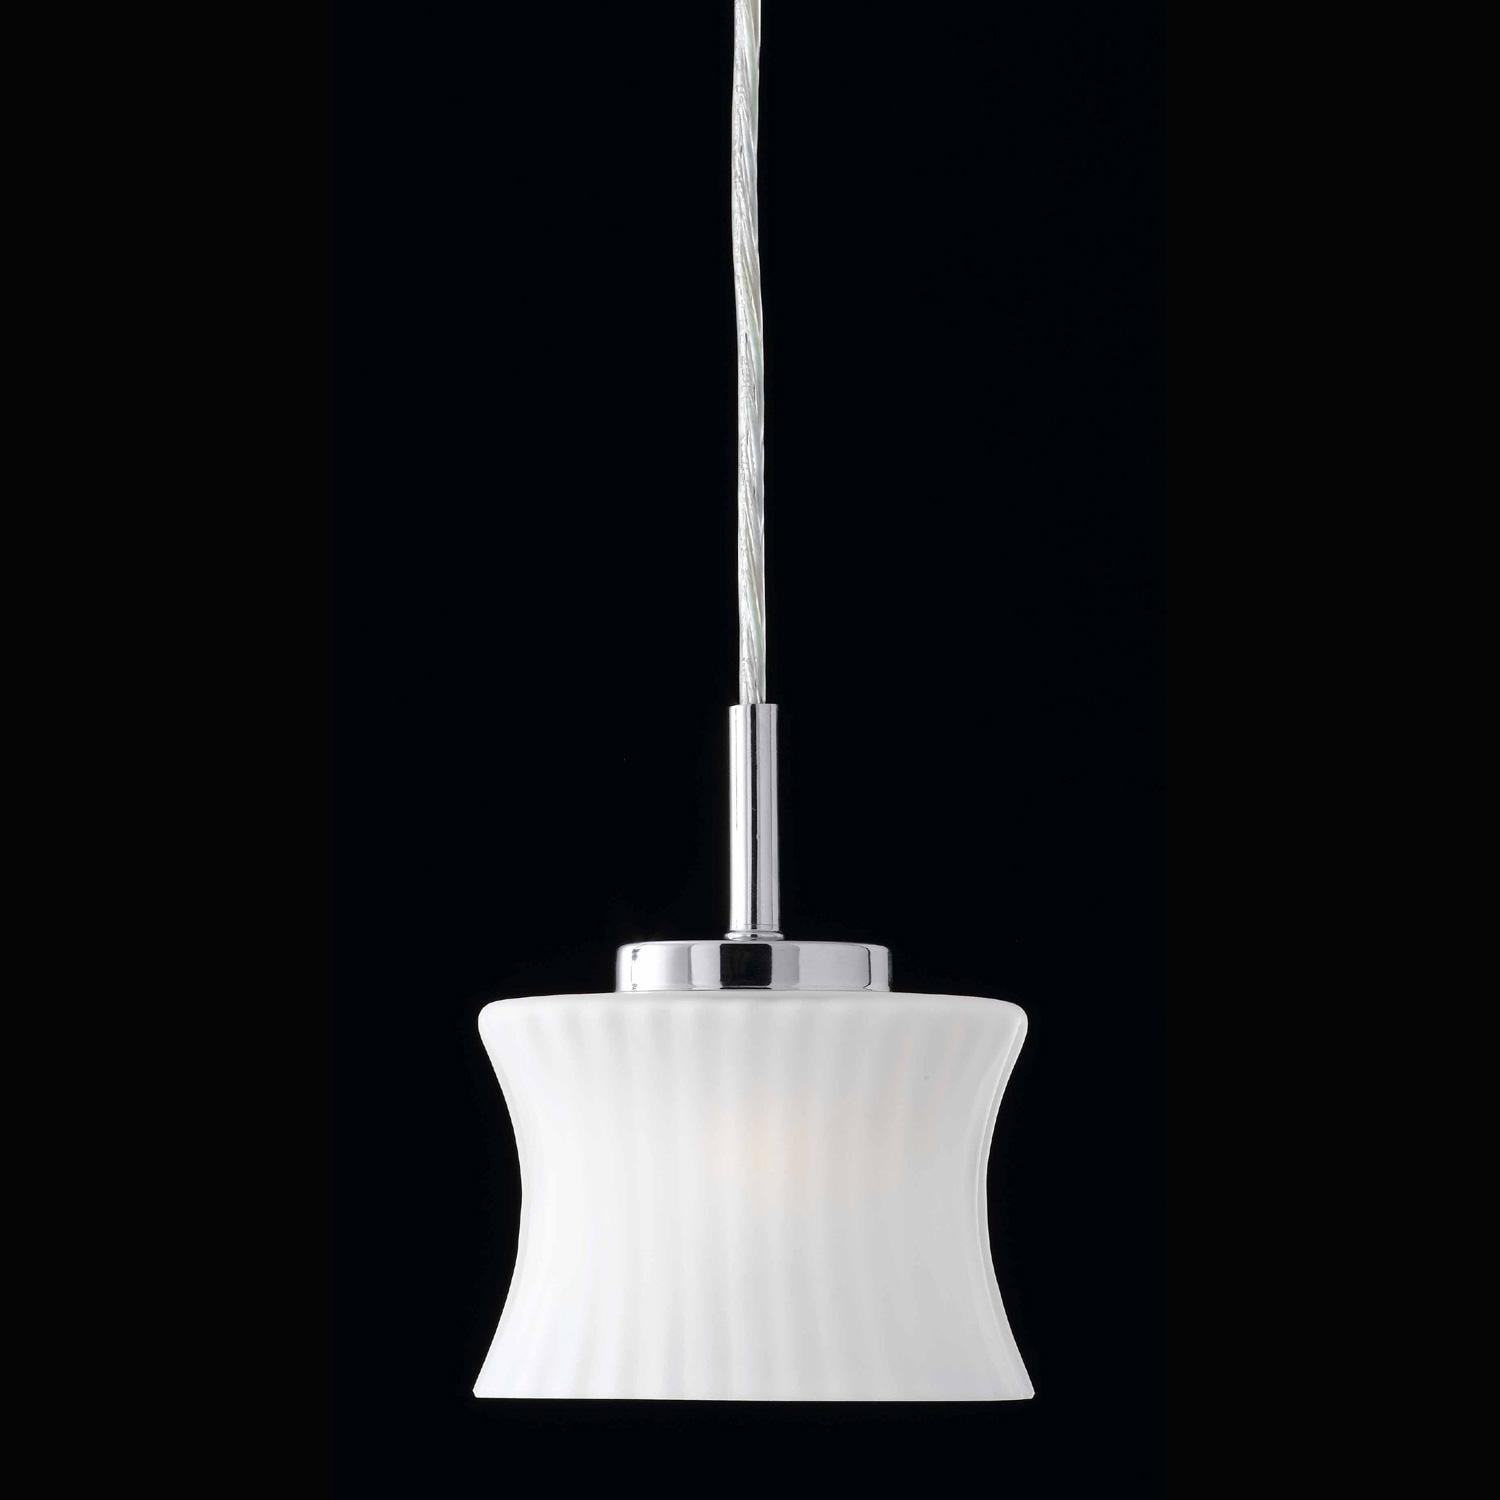 Astro 1-light Chrome Mini-Pendant